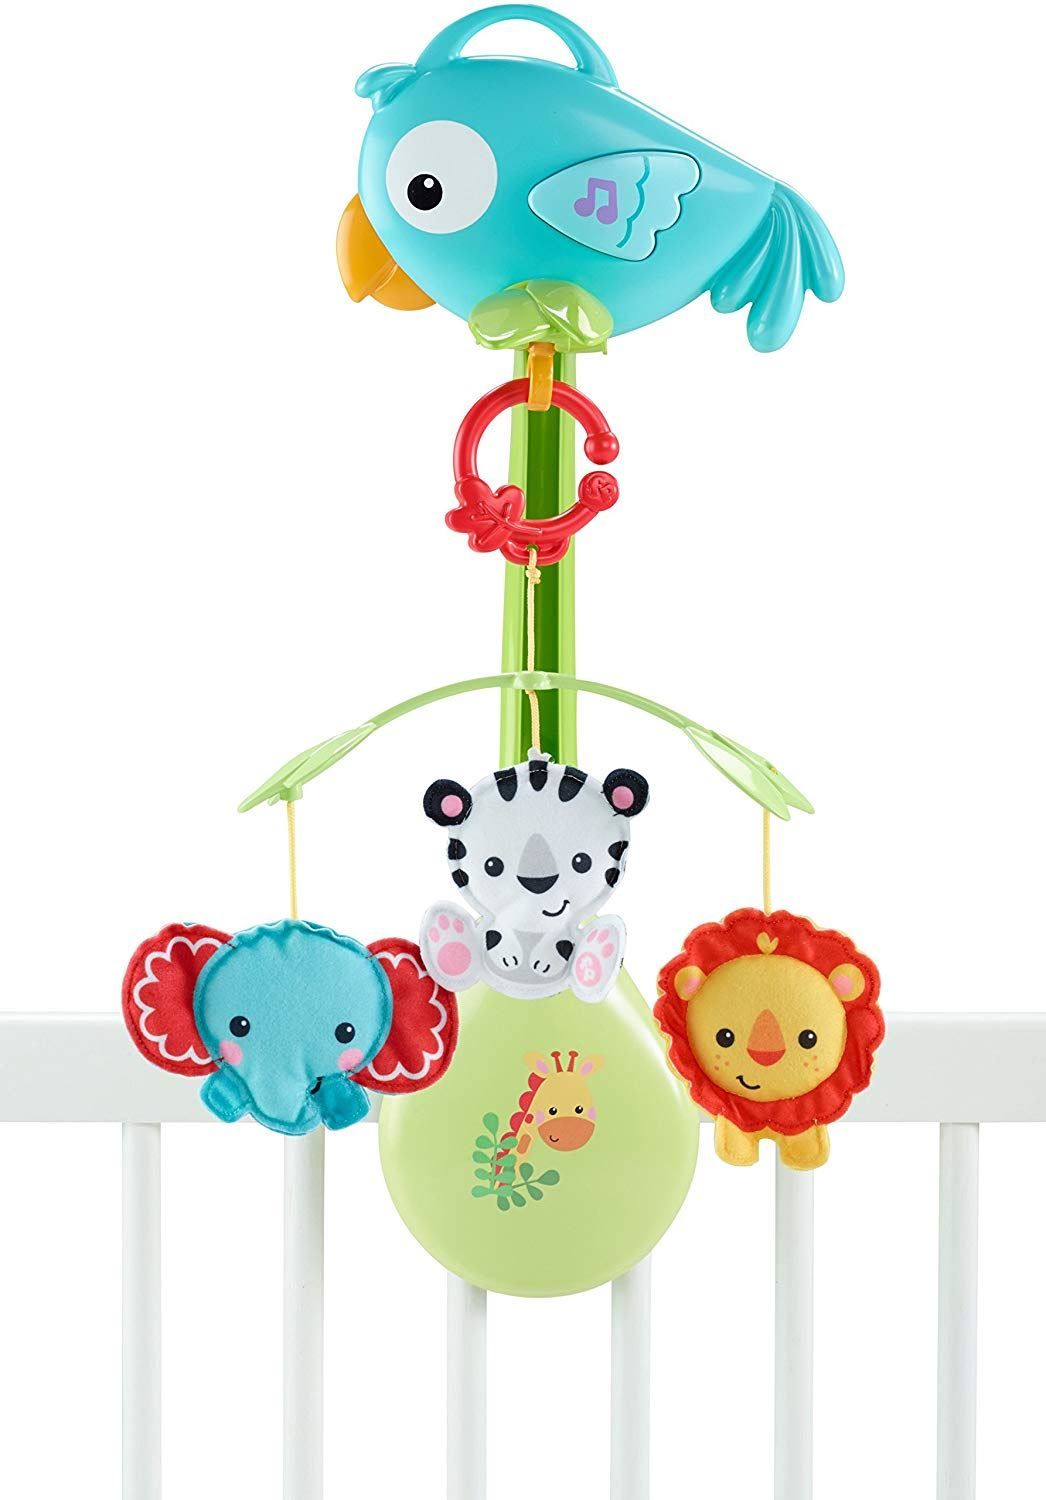 Fisher Price Rainforest Friends 3-in-1 Musical Mobile Baby